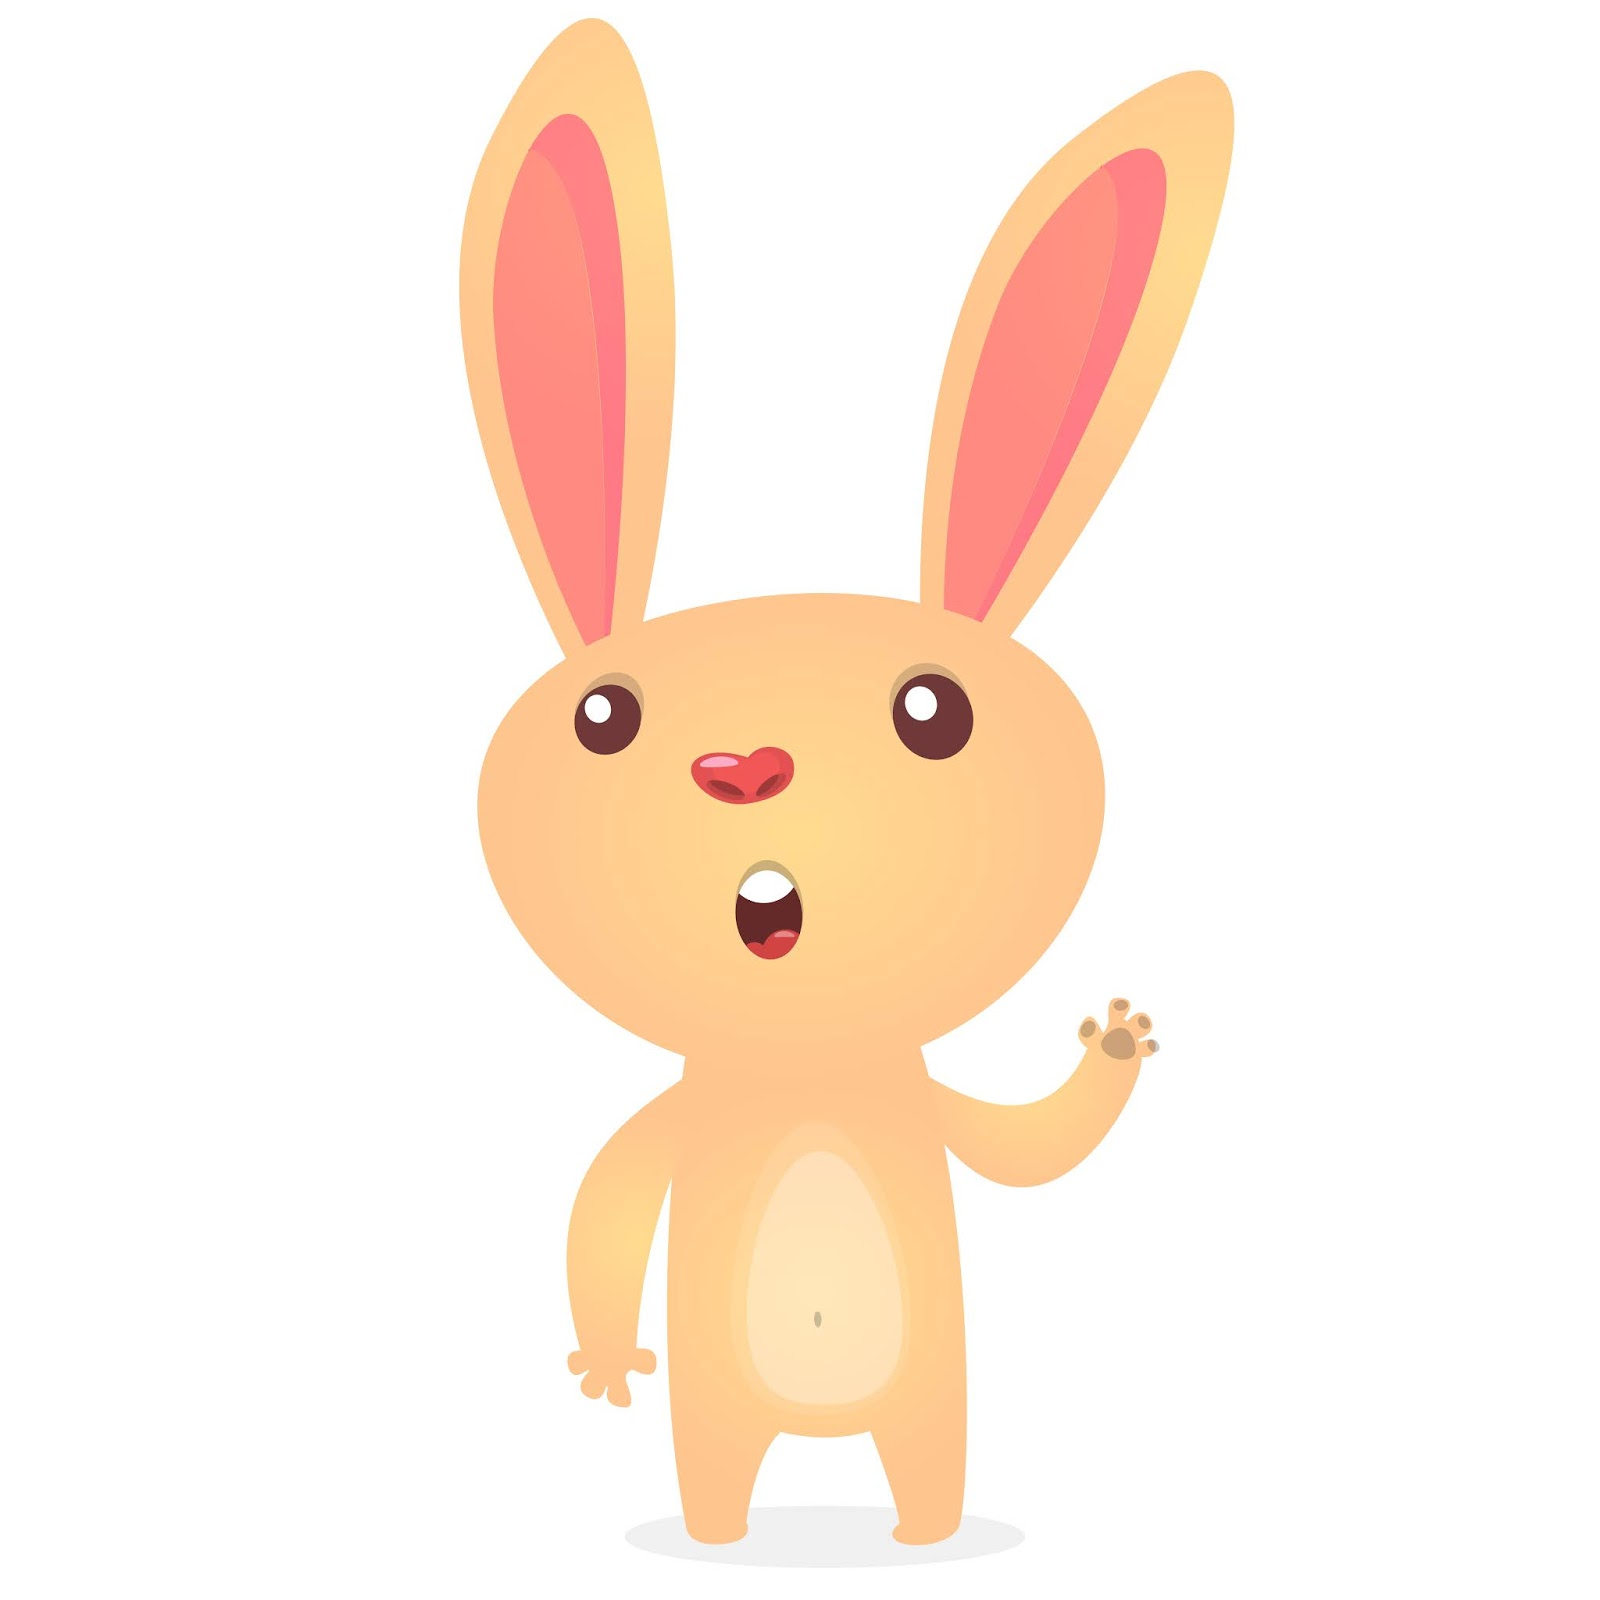 Cartoon Bunny Rabbit Illustration Free Download Vector CDR, AI, EPS and PNG Formats